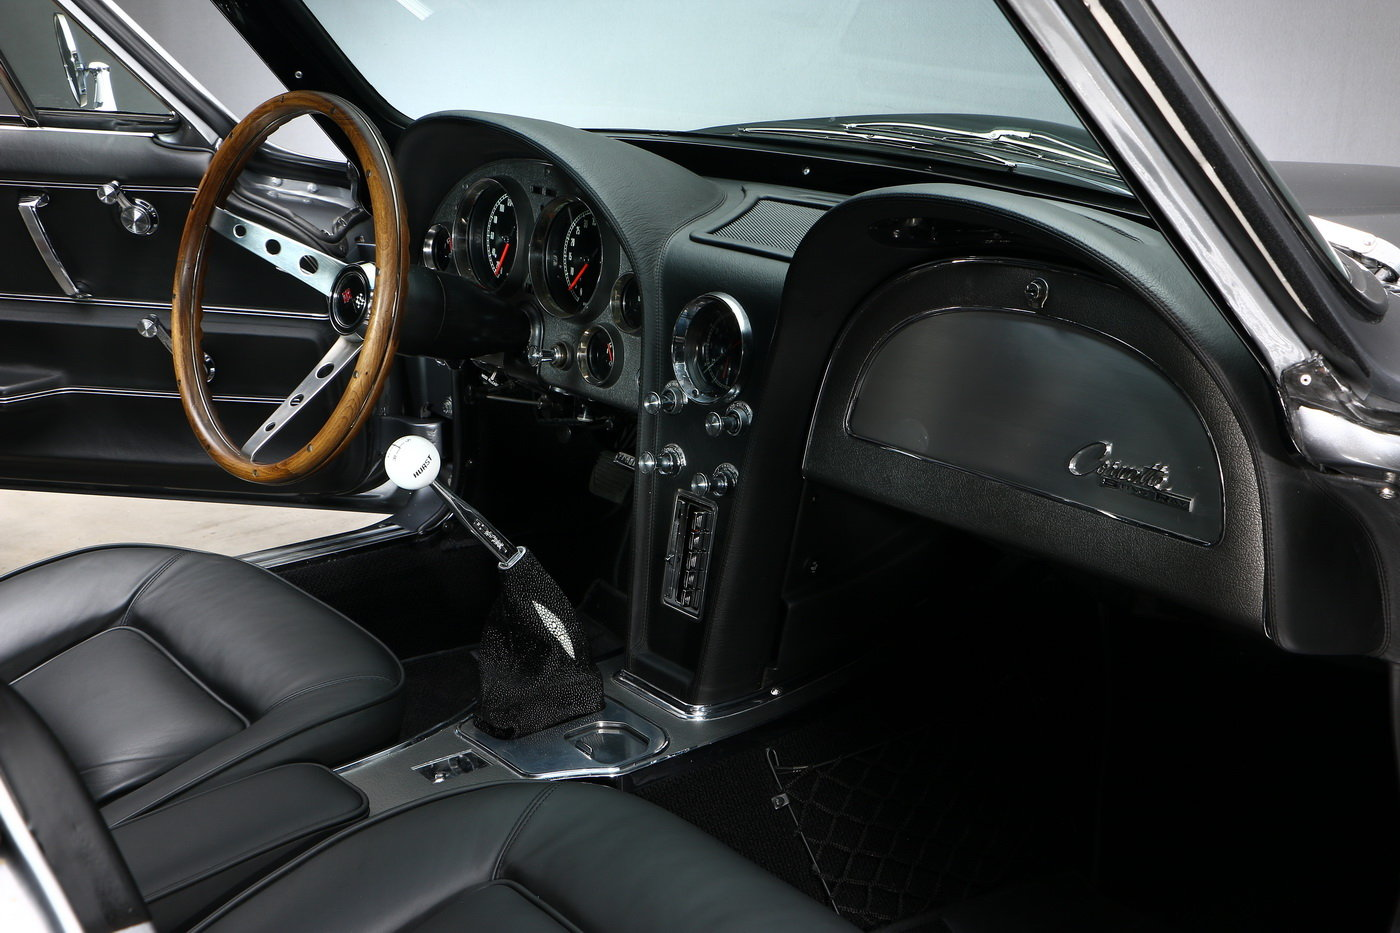 1966 Chevroltet Corvette Sting Ray C2 Coupé For Sale (picture 5 of 6)